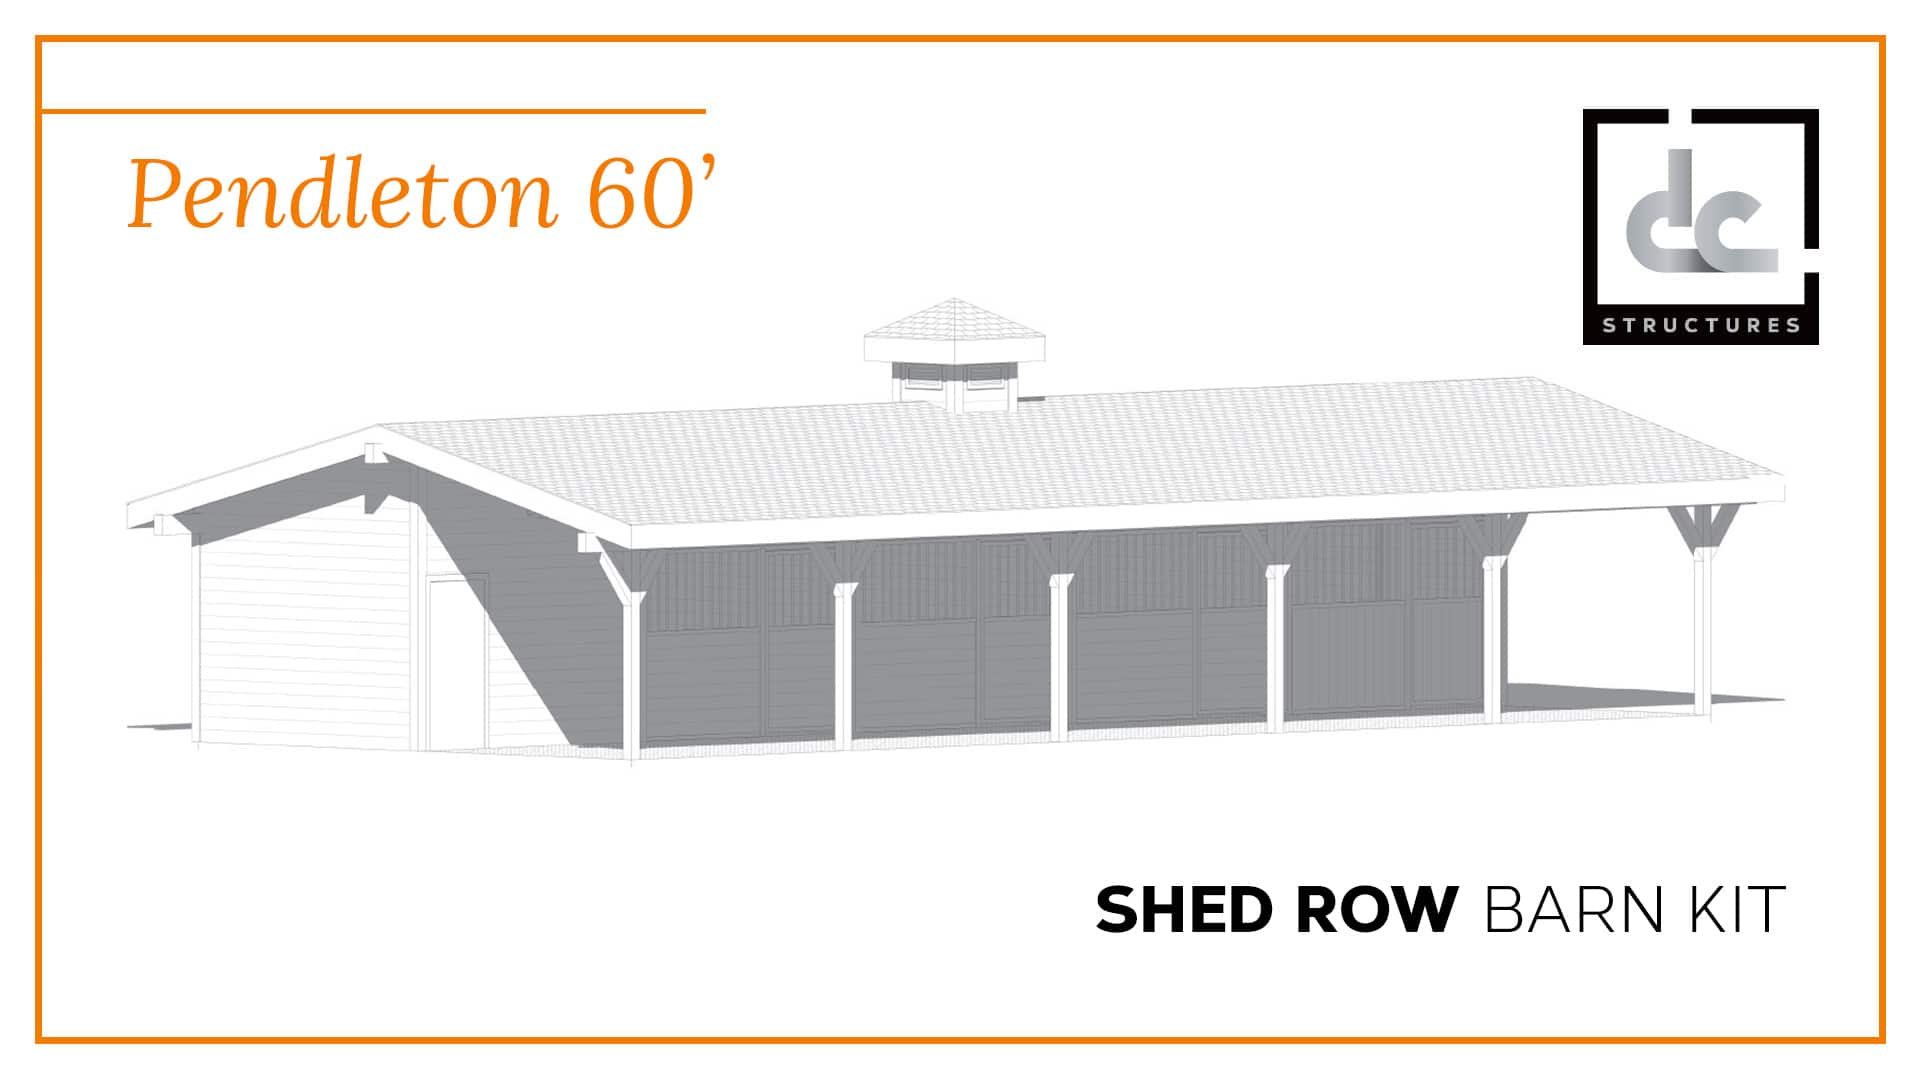 Pendleton Shed Row Barn Kit 60 DC Structures